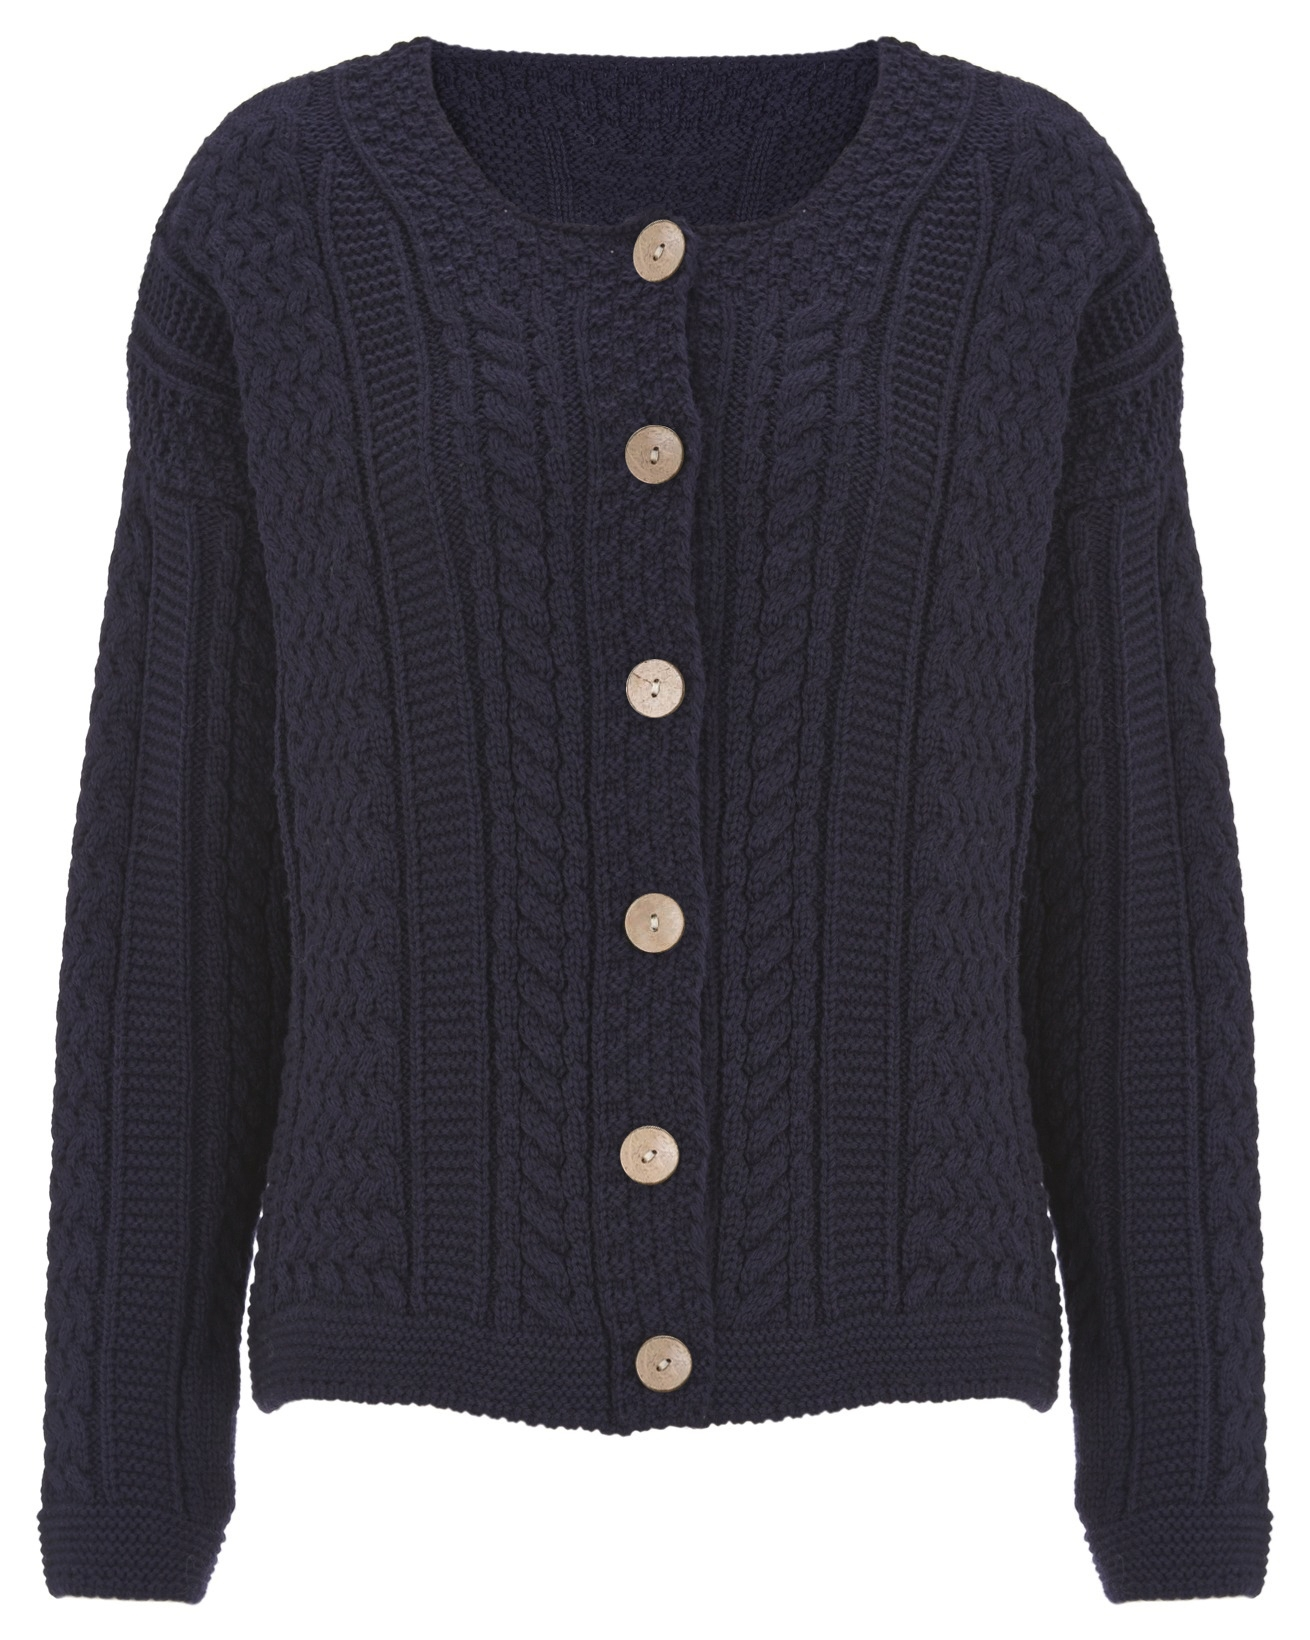 7237-cable cardi-navy-front.jpg